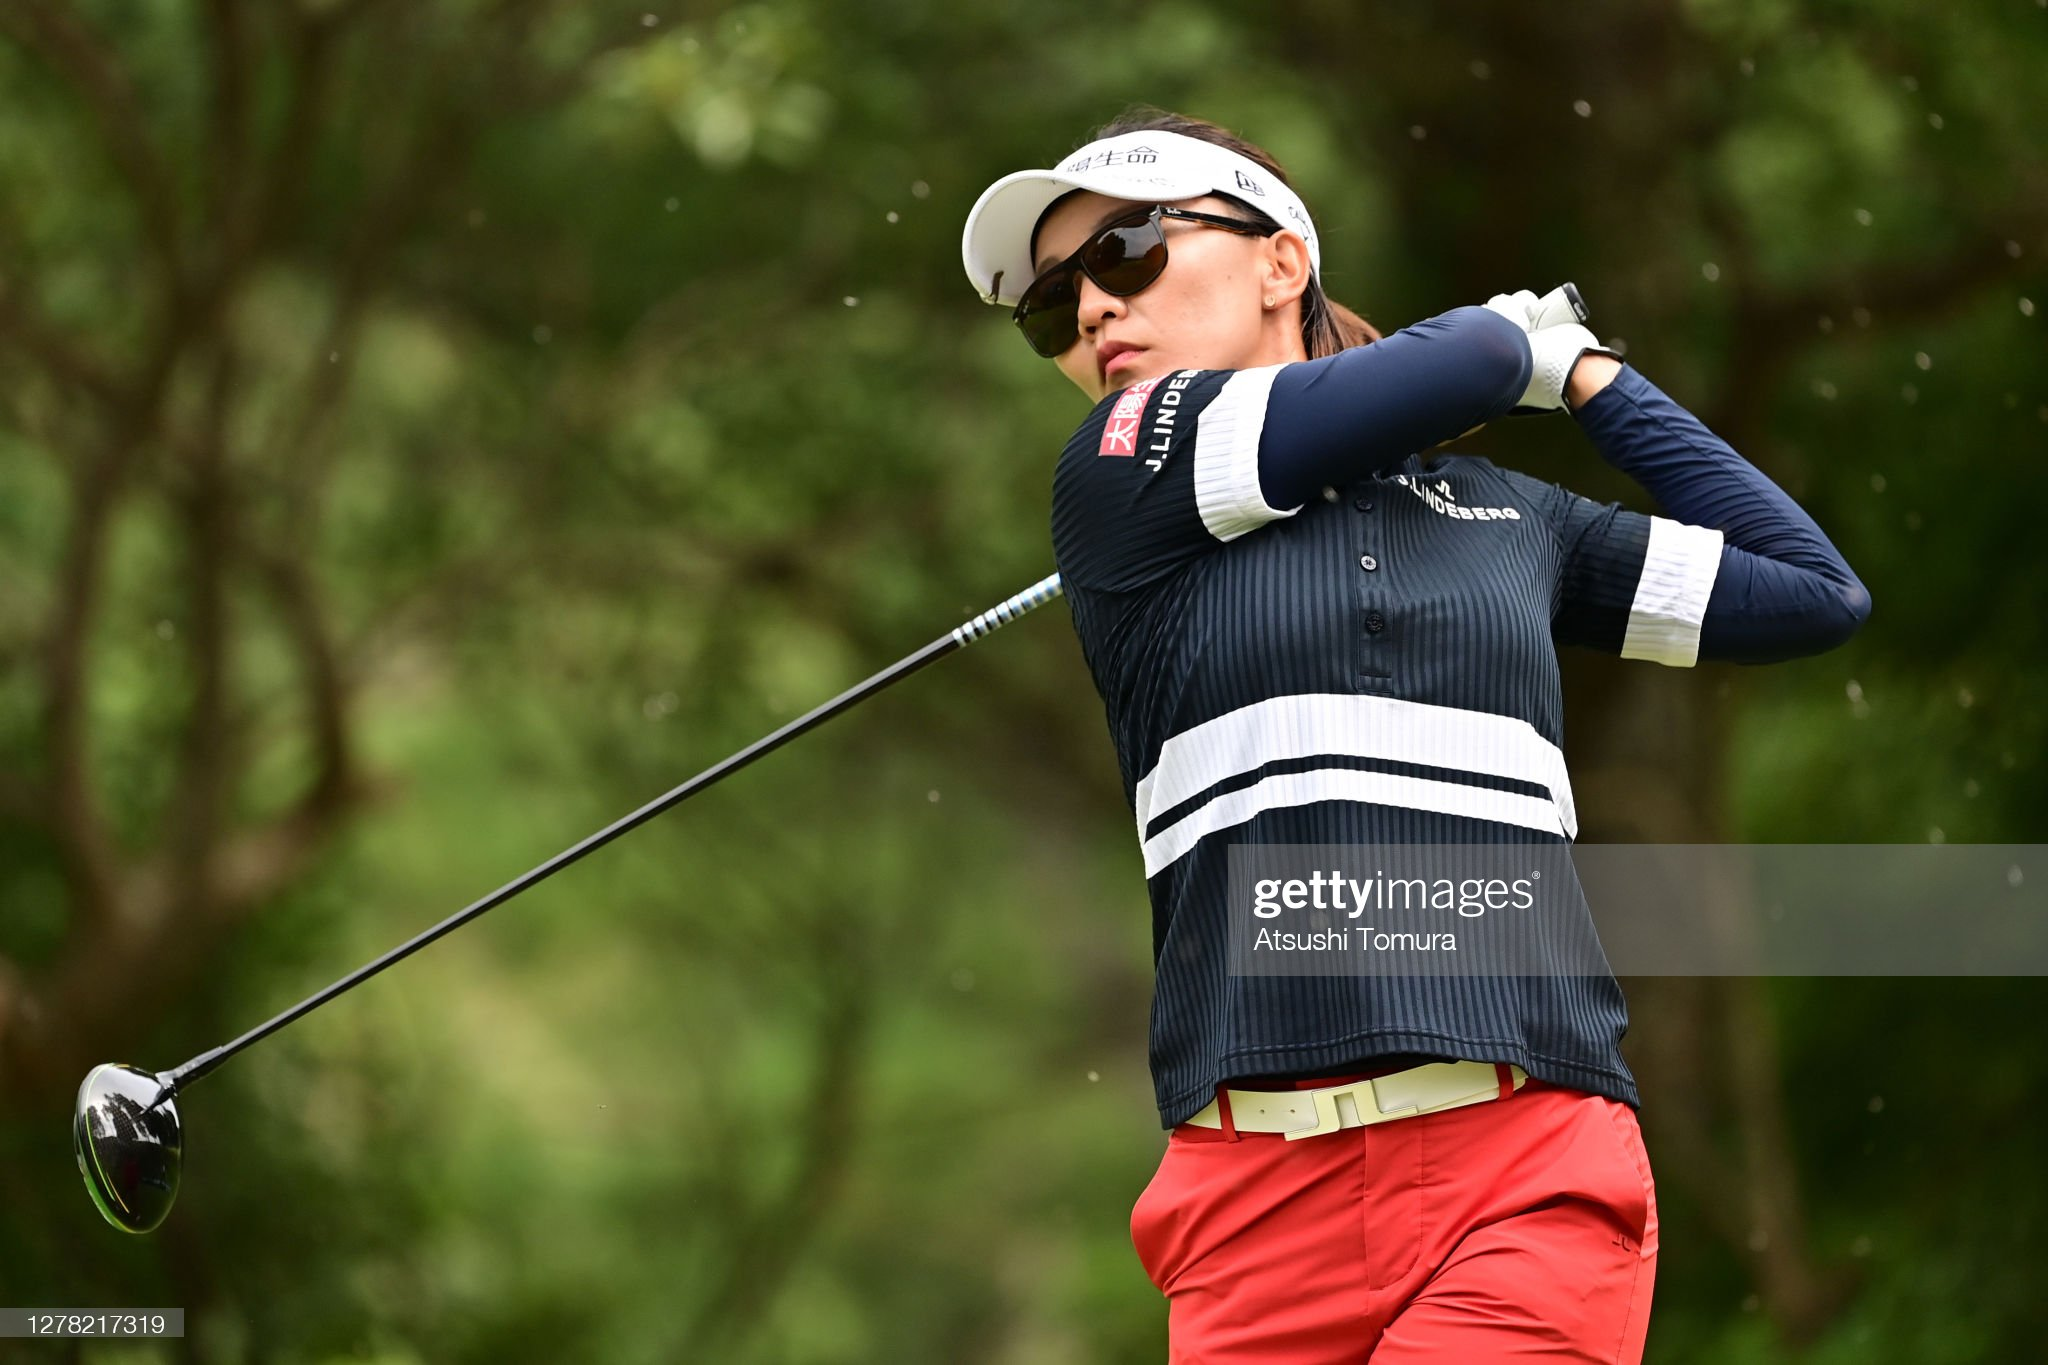 https://media.gettyimages.com/photos/teresa-lu-of-taiwan-hits-her-tee-shot-on-the-3rd-hole-during-the-of-picture-id1278217319?s=2048x2048